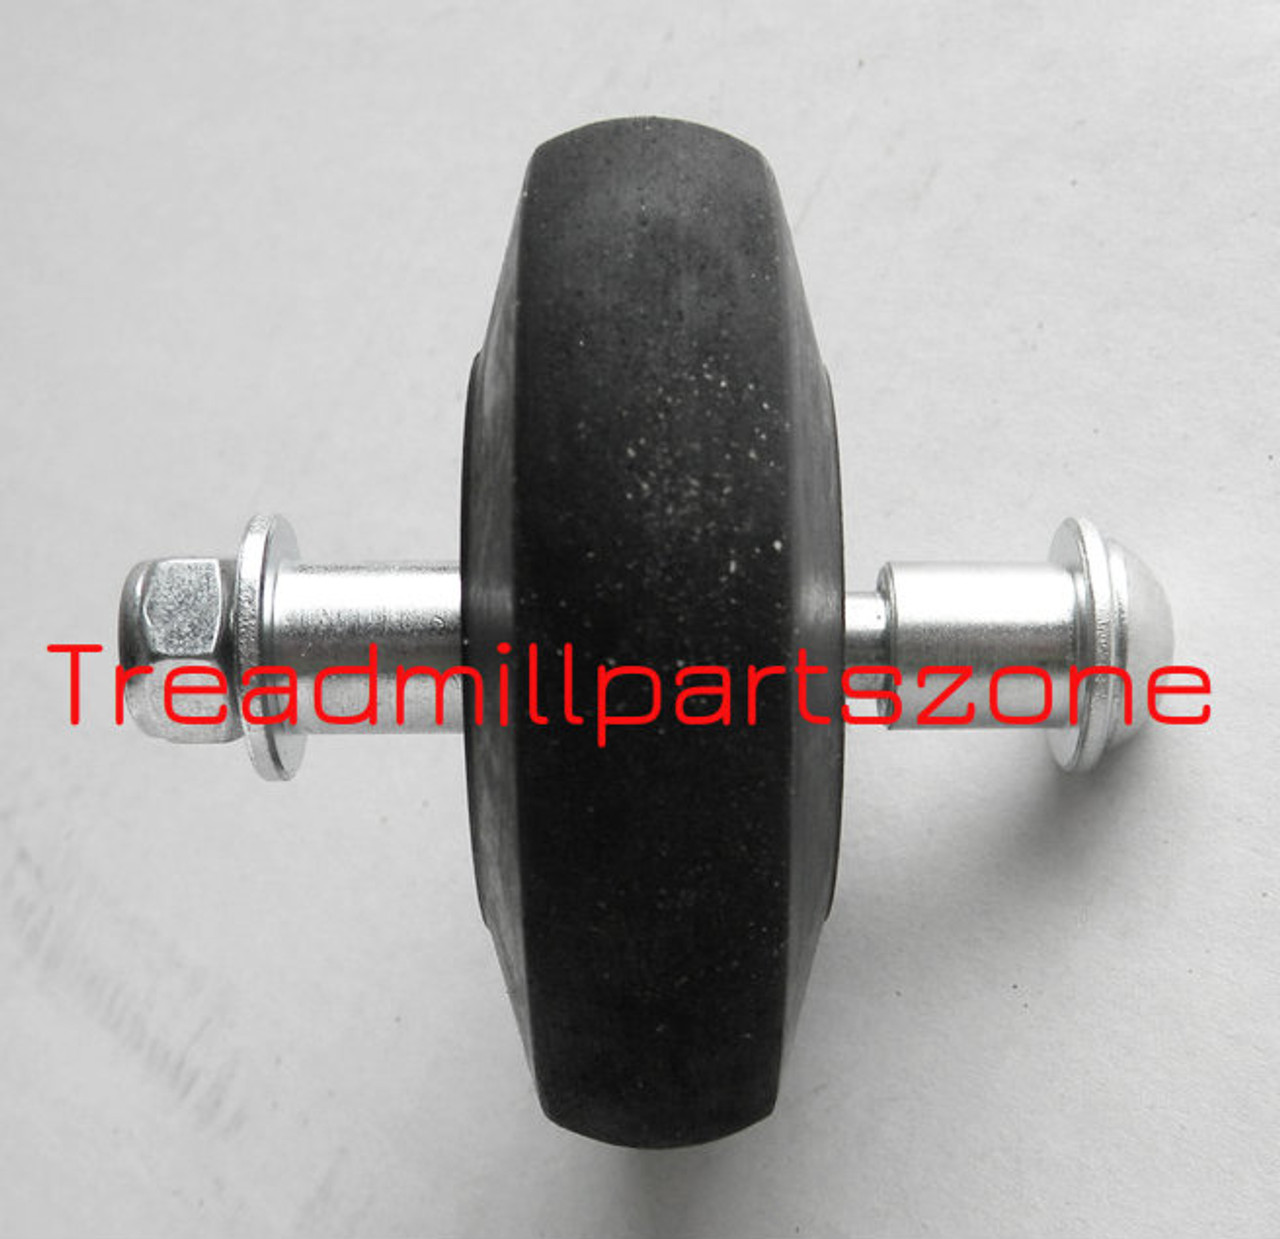 Schwinn Model 425 Elliptical Roller Part Number 002-4887